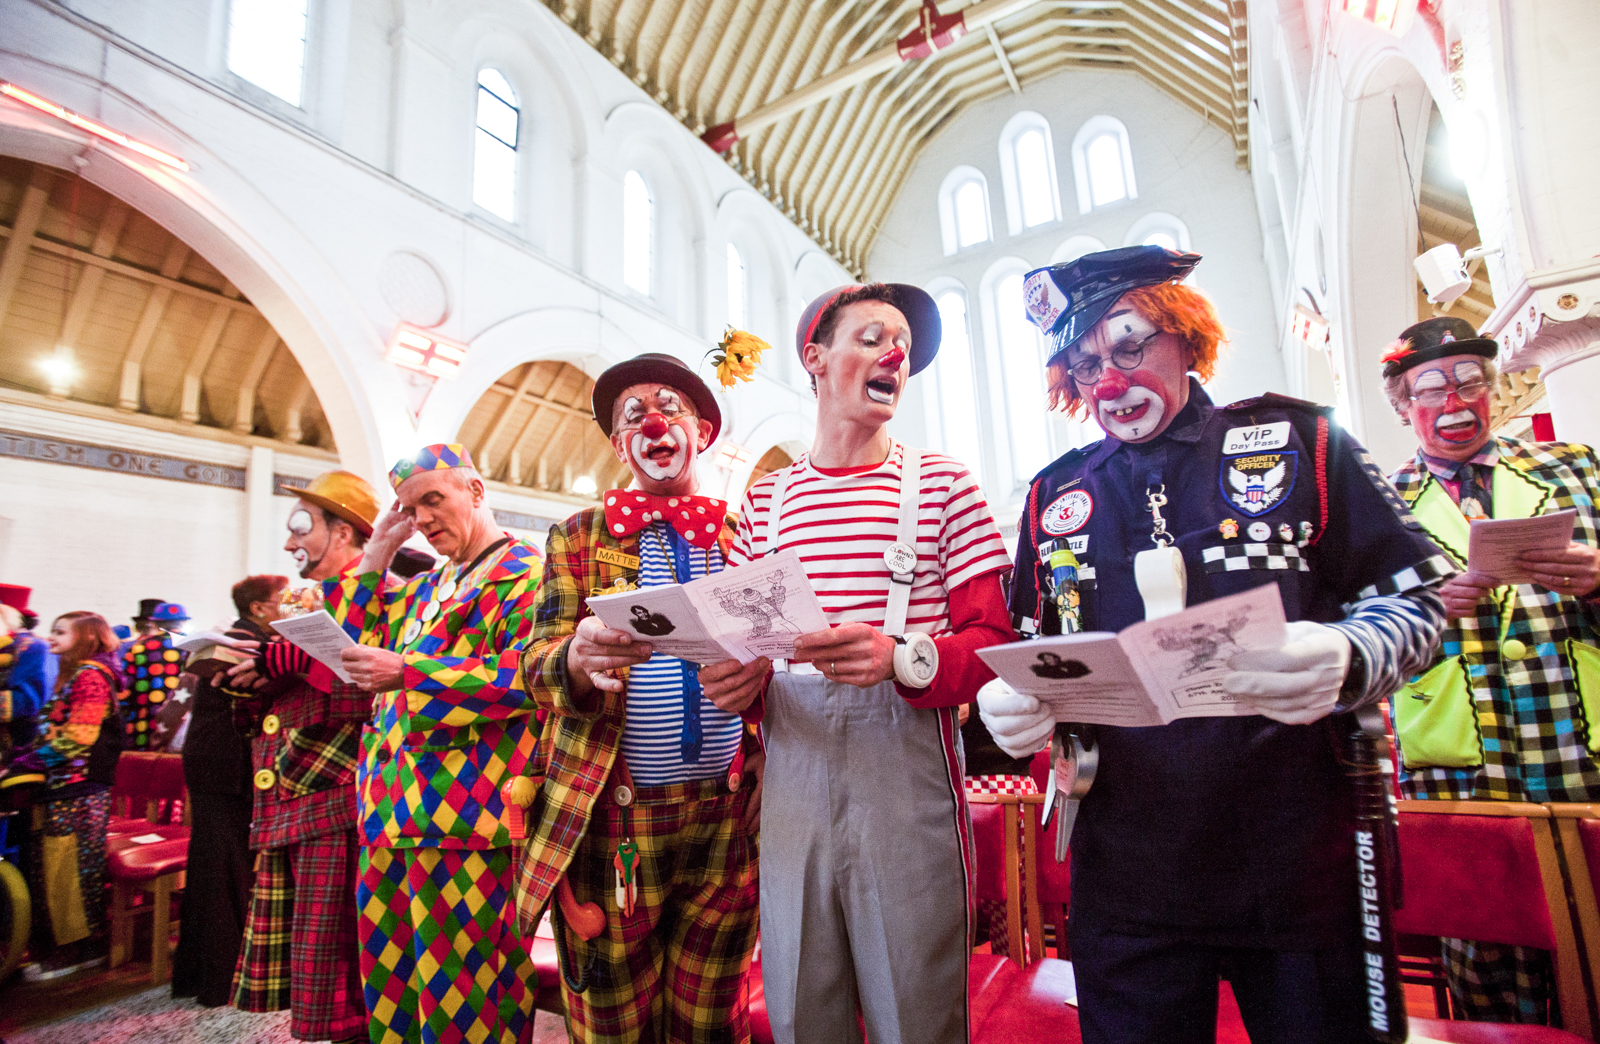 Clowns attend a church service in memory of Joseph Grimaldi, at the Holy Trinity Church in Dalston, east London.